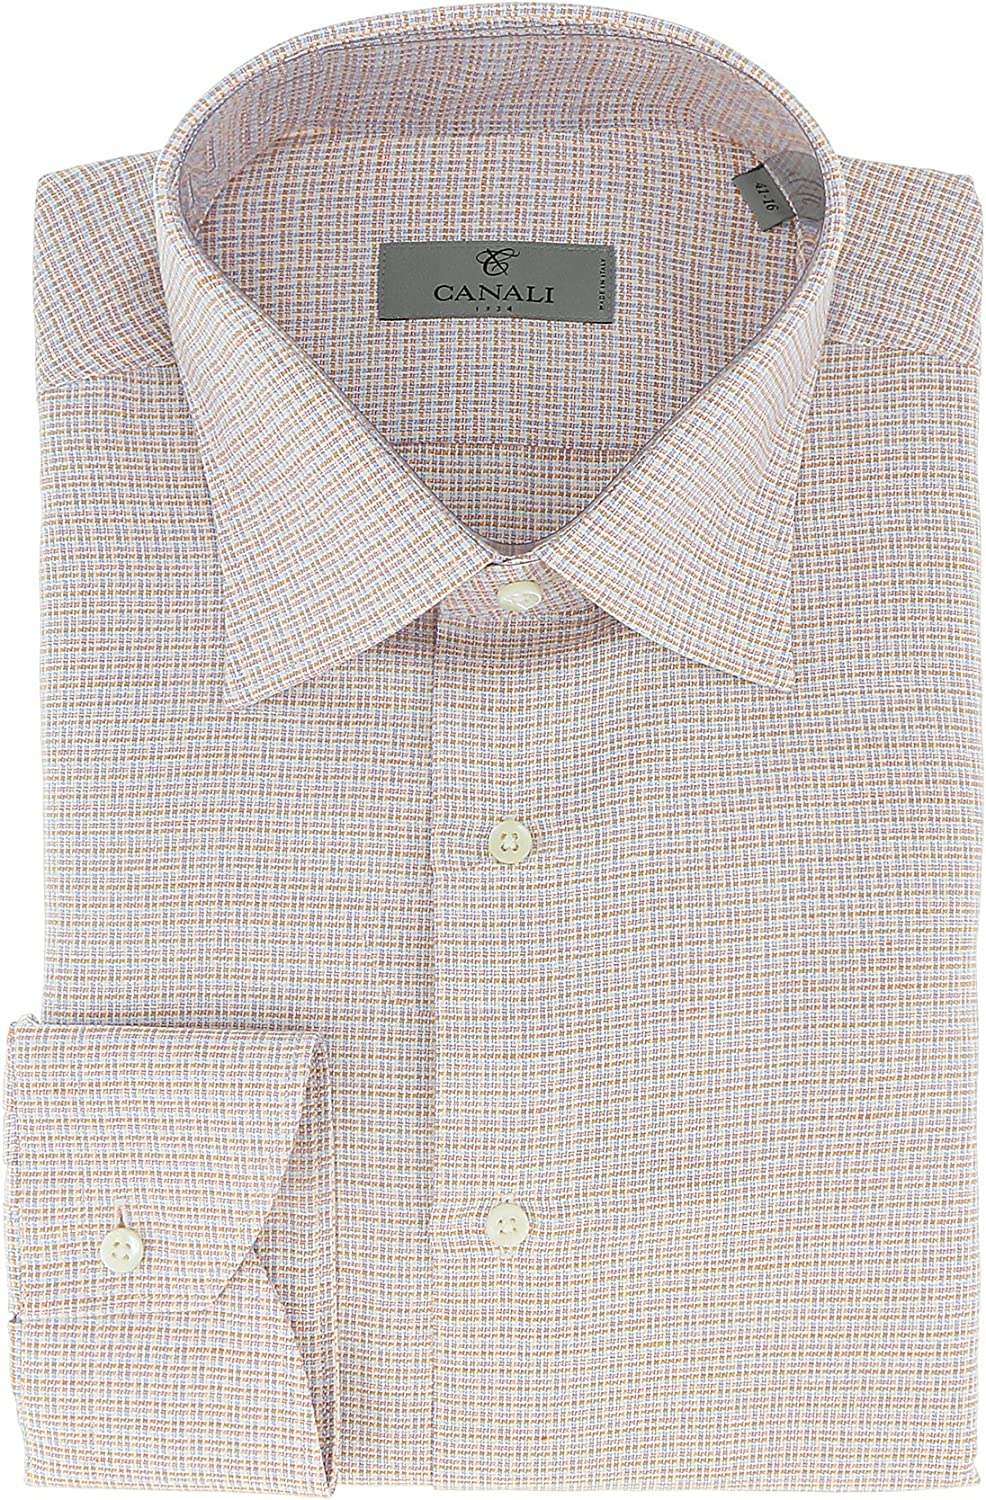 Canali Blue//Grey Tatterstall Check Formal Shirts